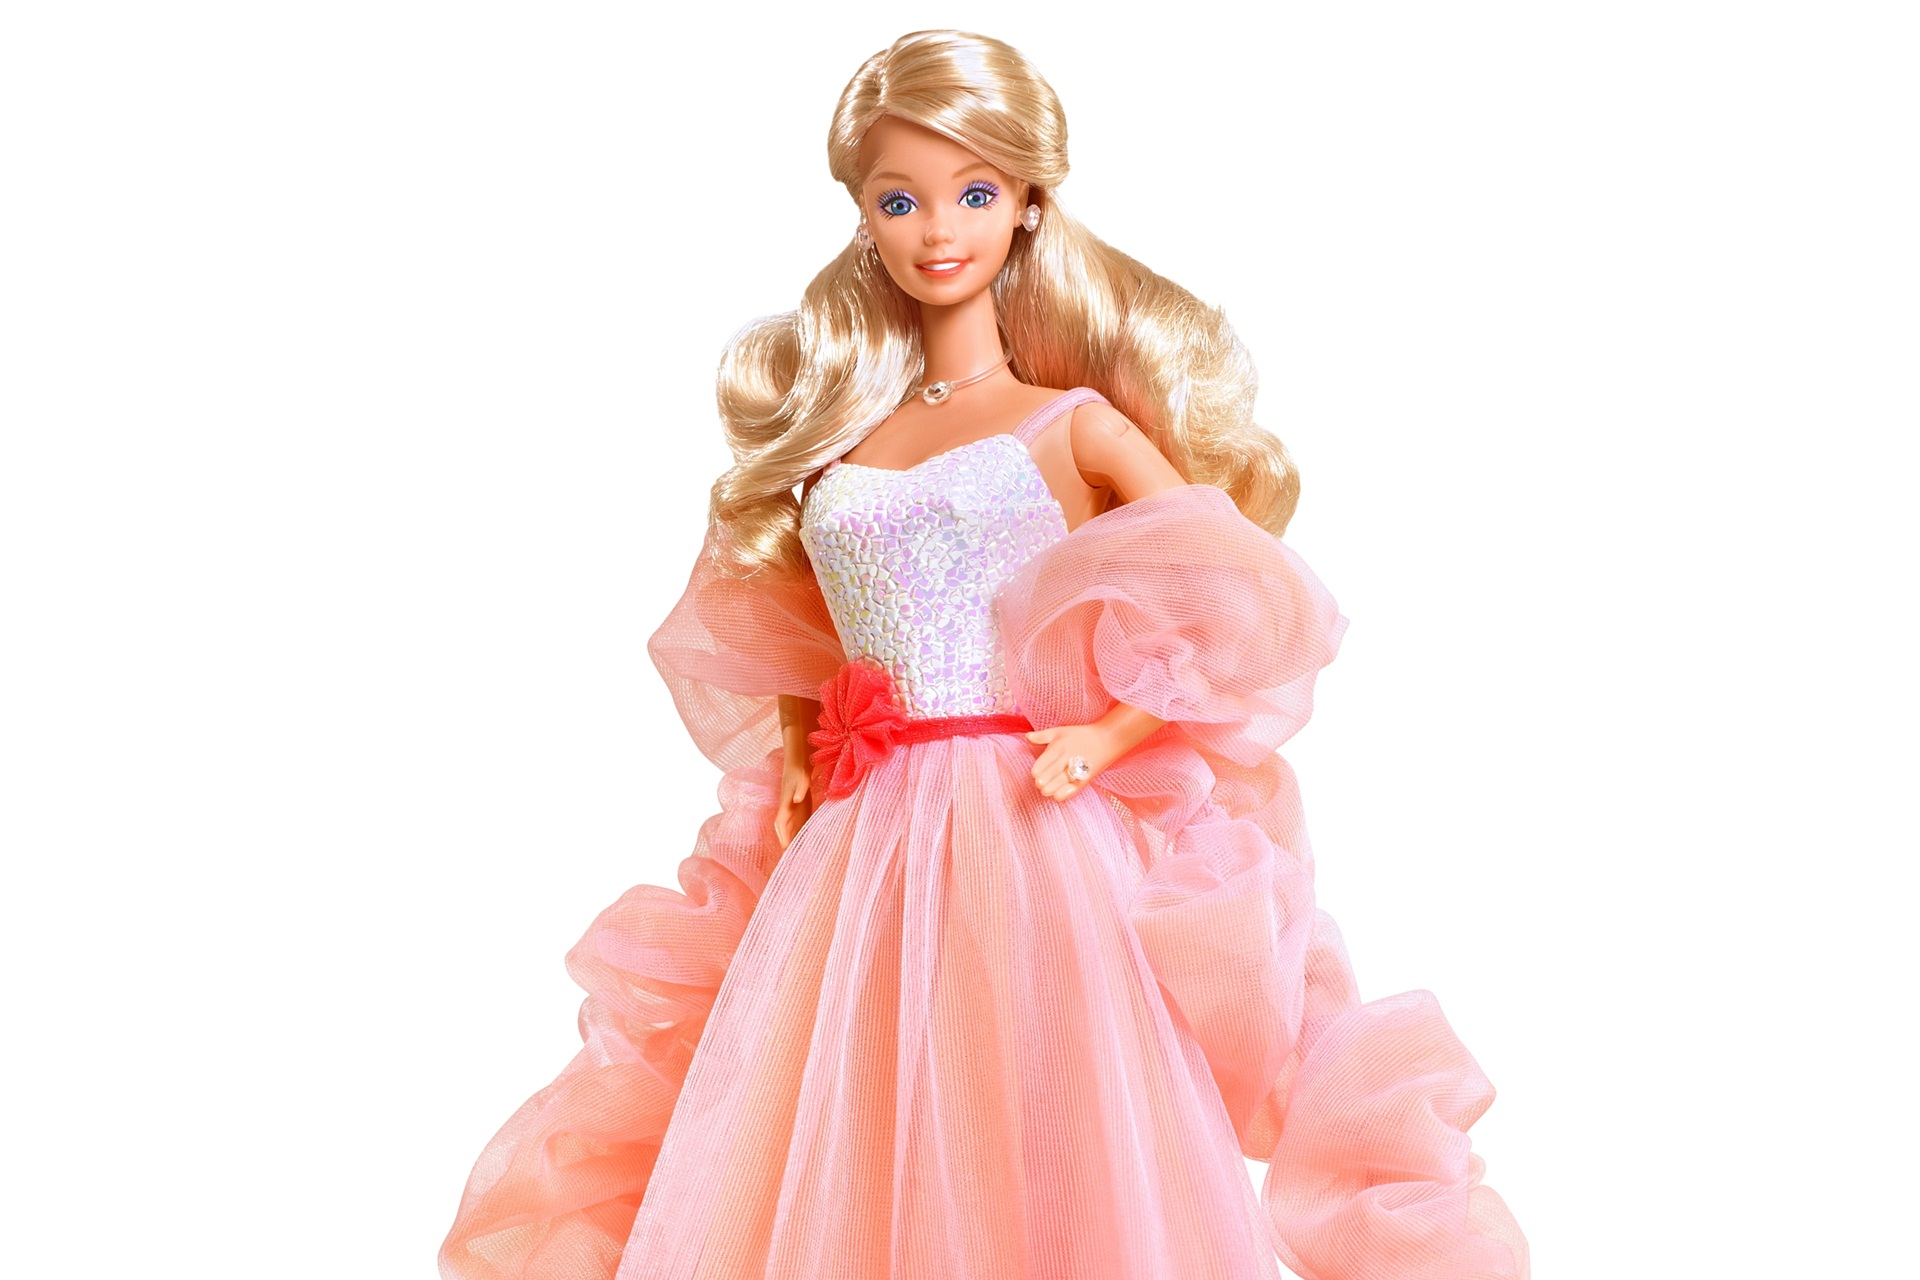 Barbie Doll Wallpaper for iPhone